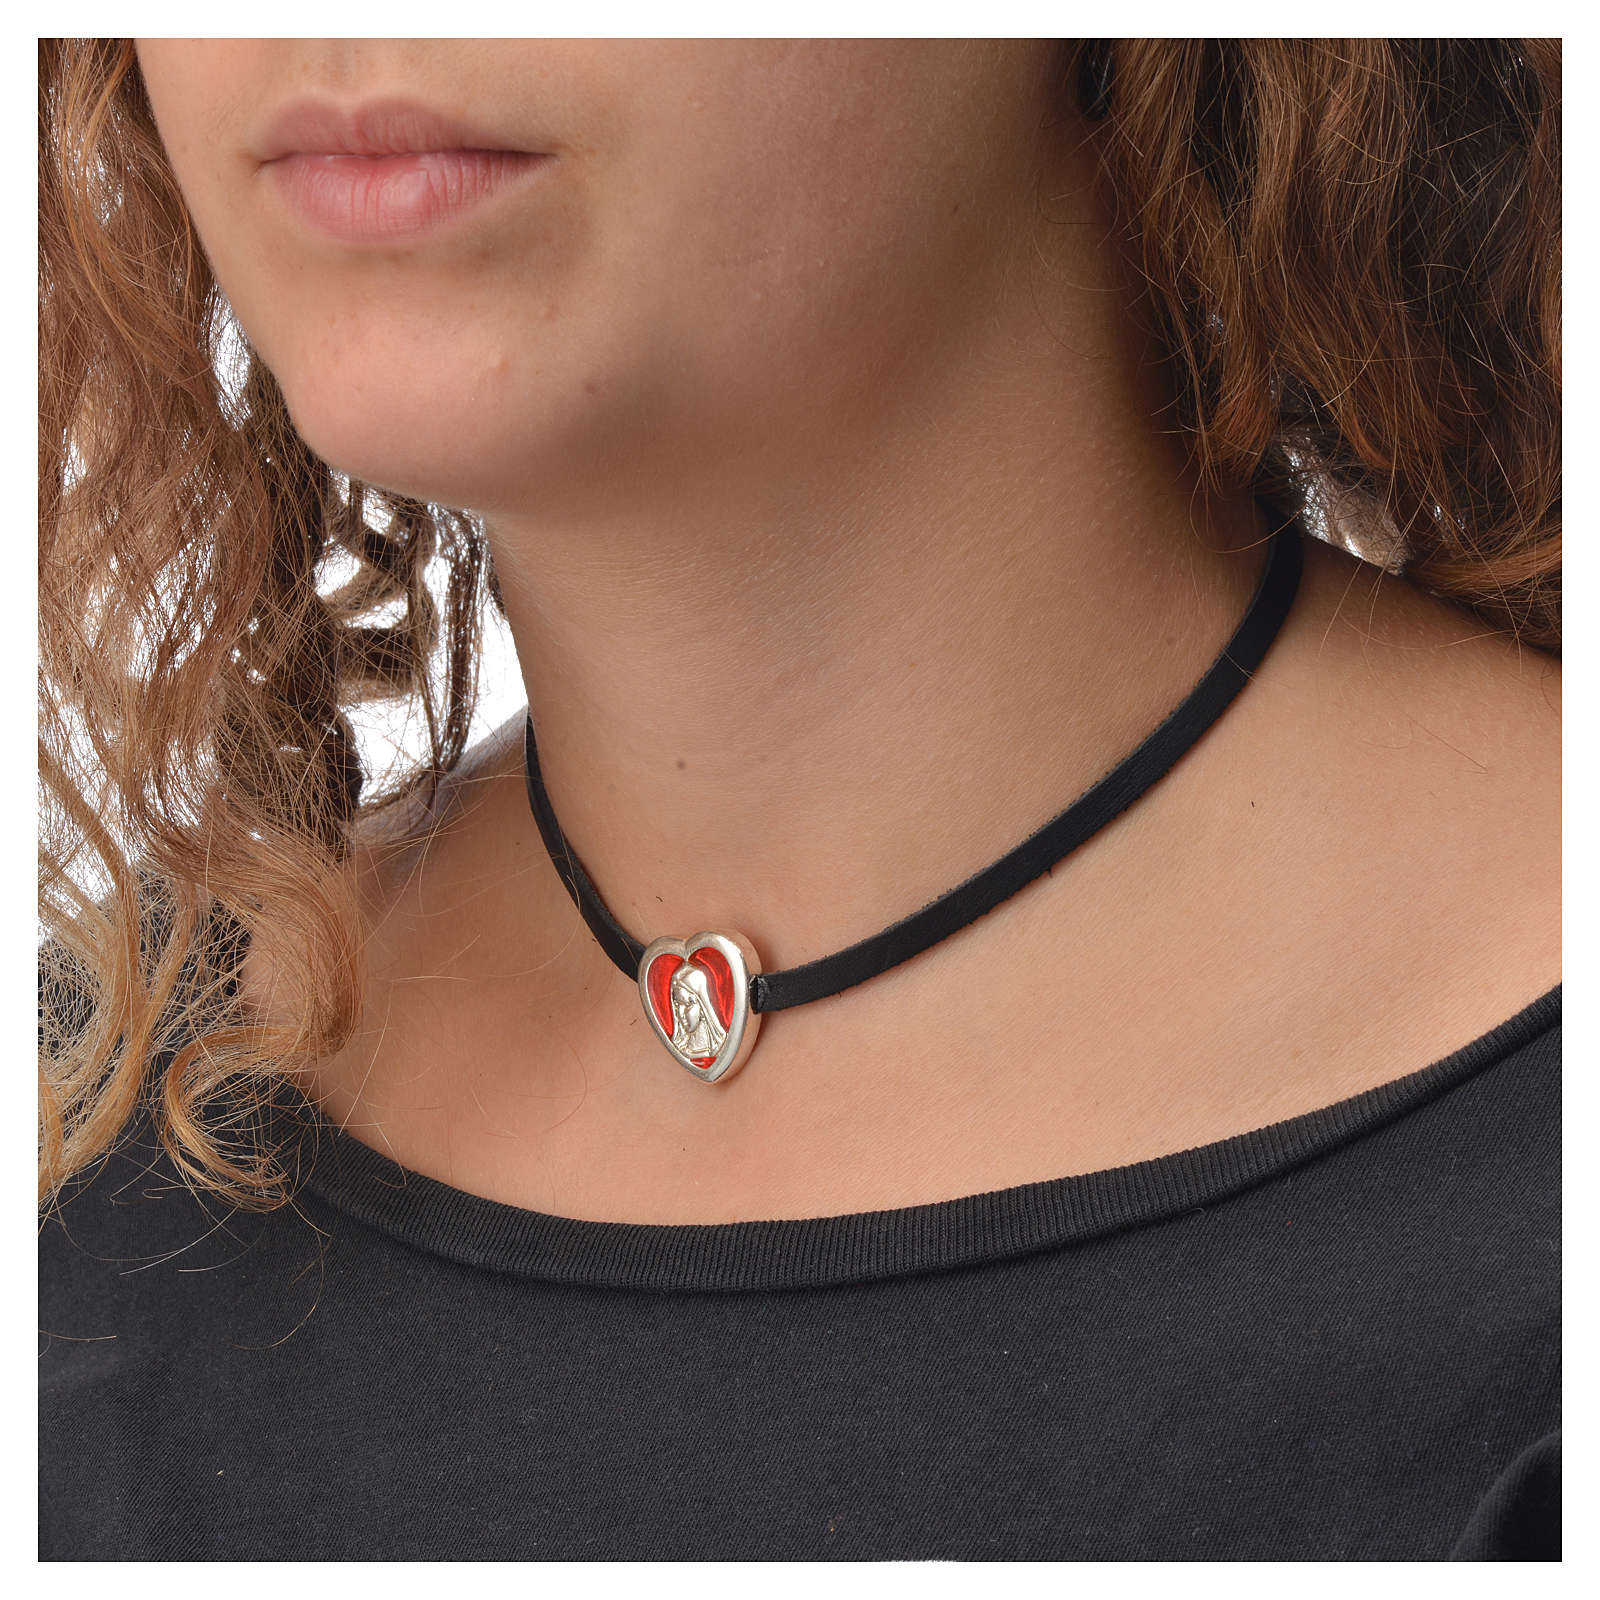 Choker necklace in black leather, Virgin Mary pendant red enamel 4